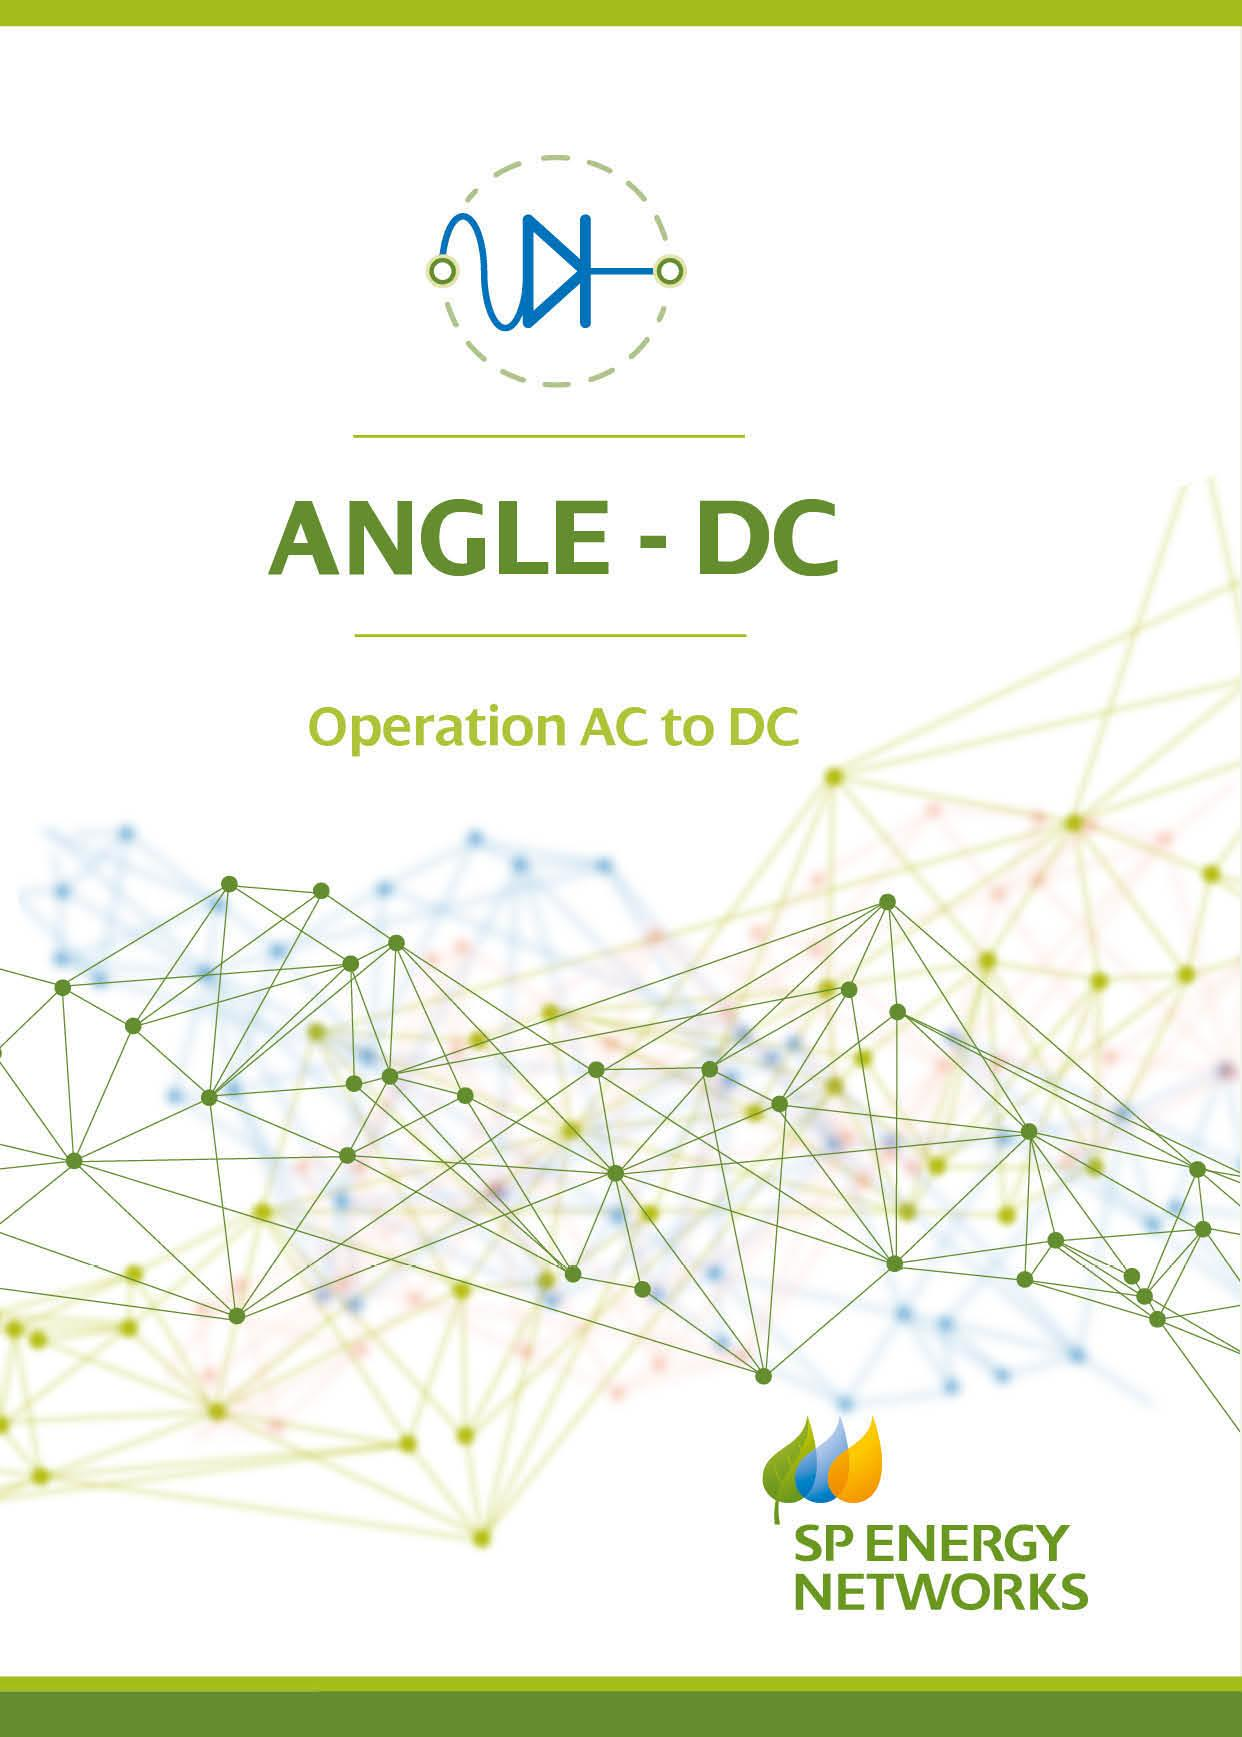 Angle Dc Sp Energy Networks